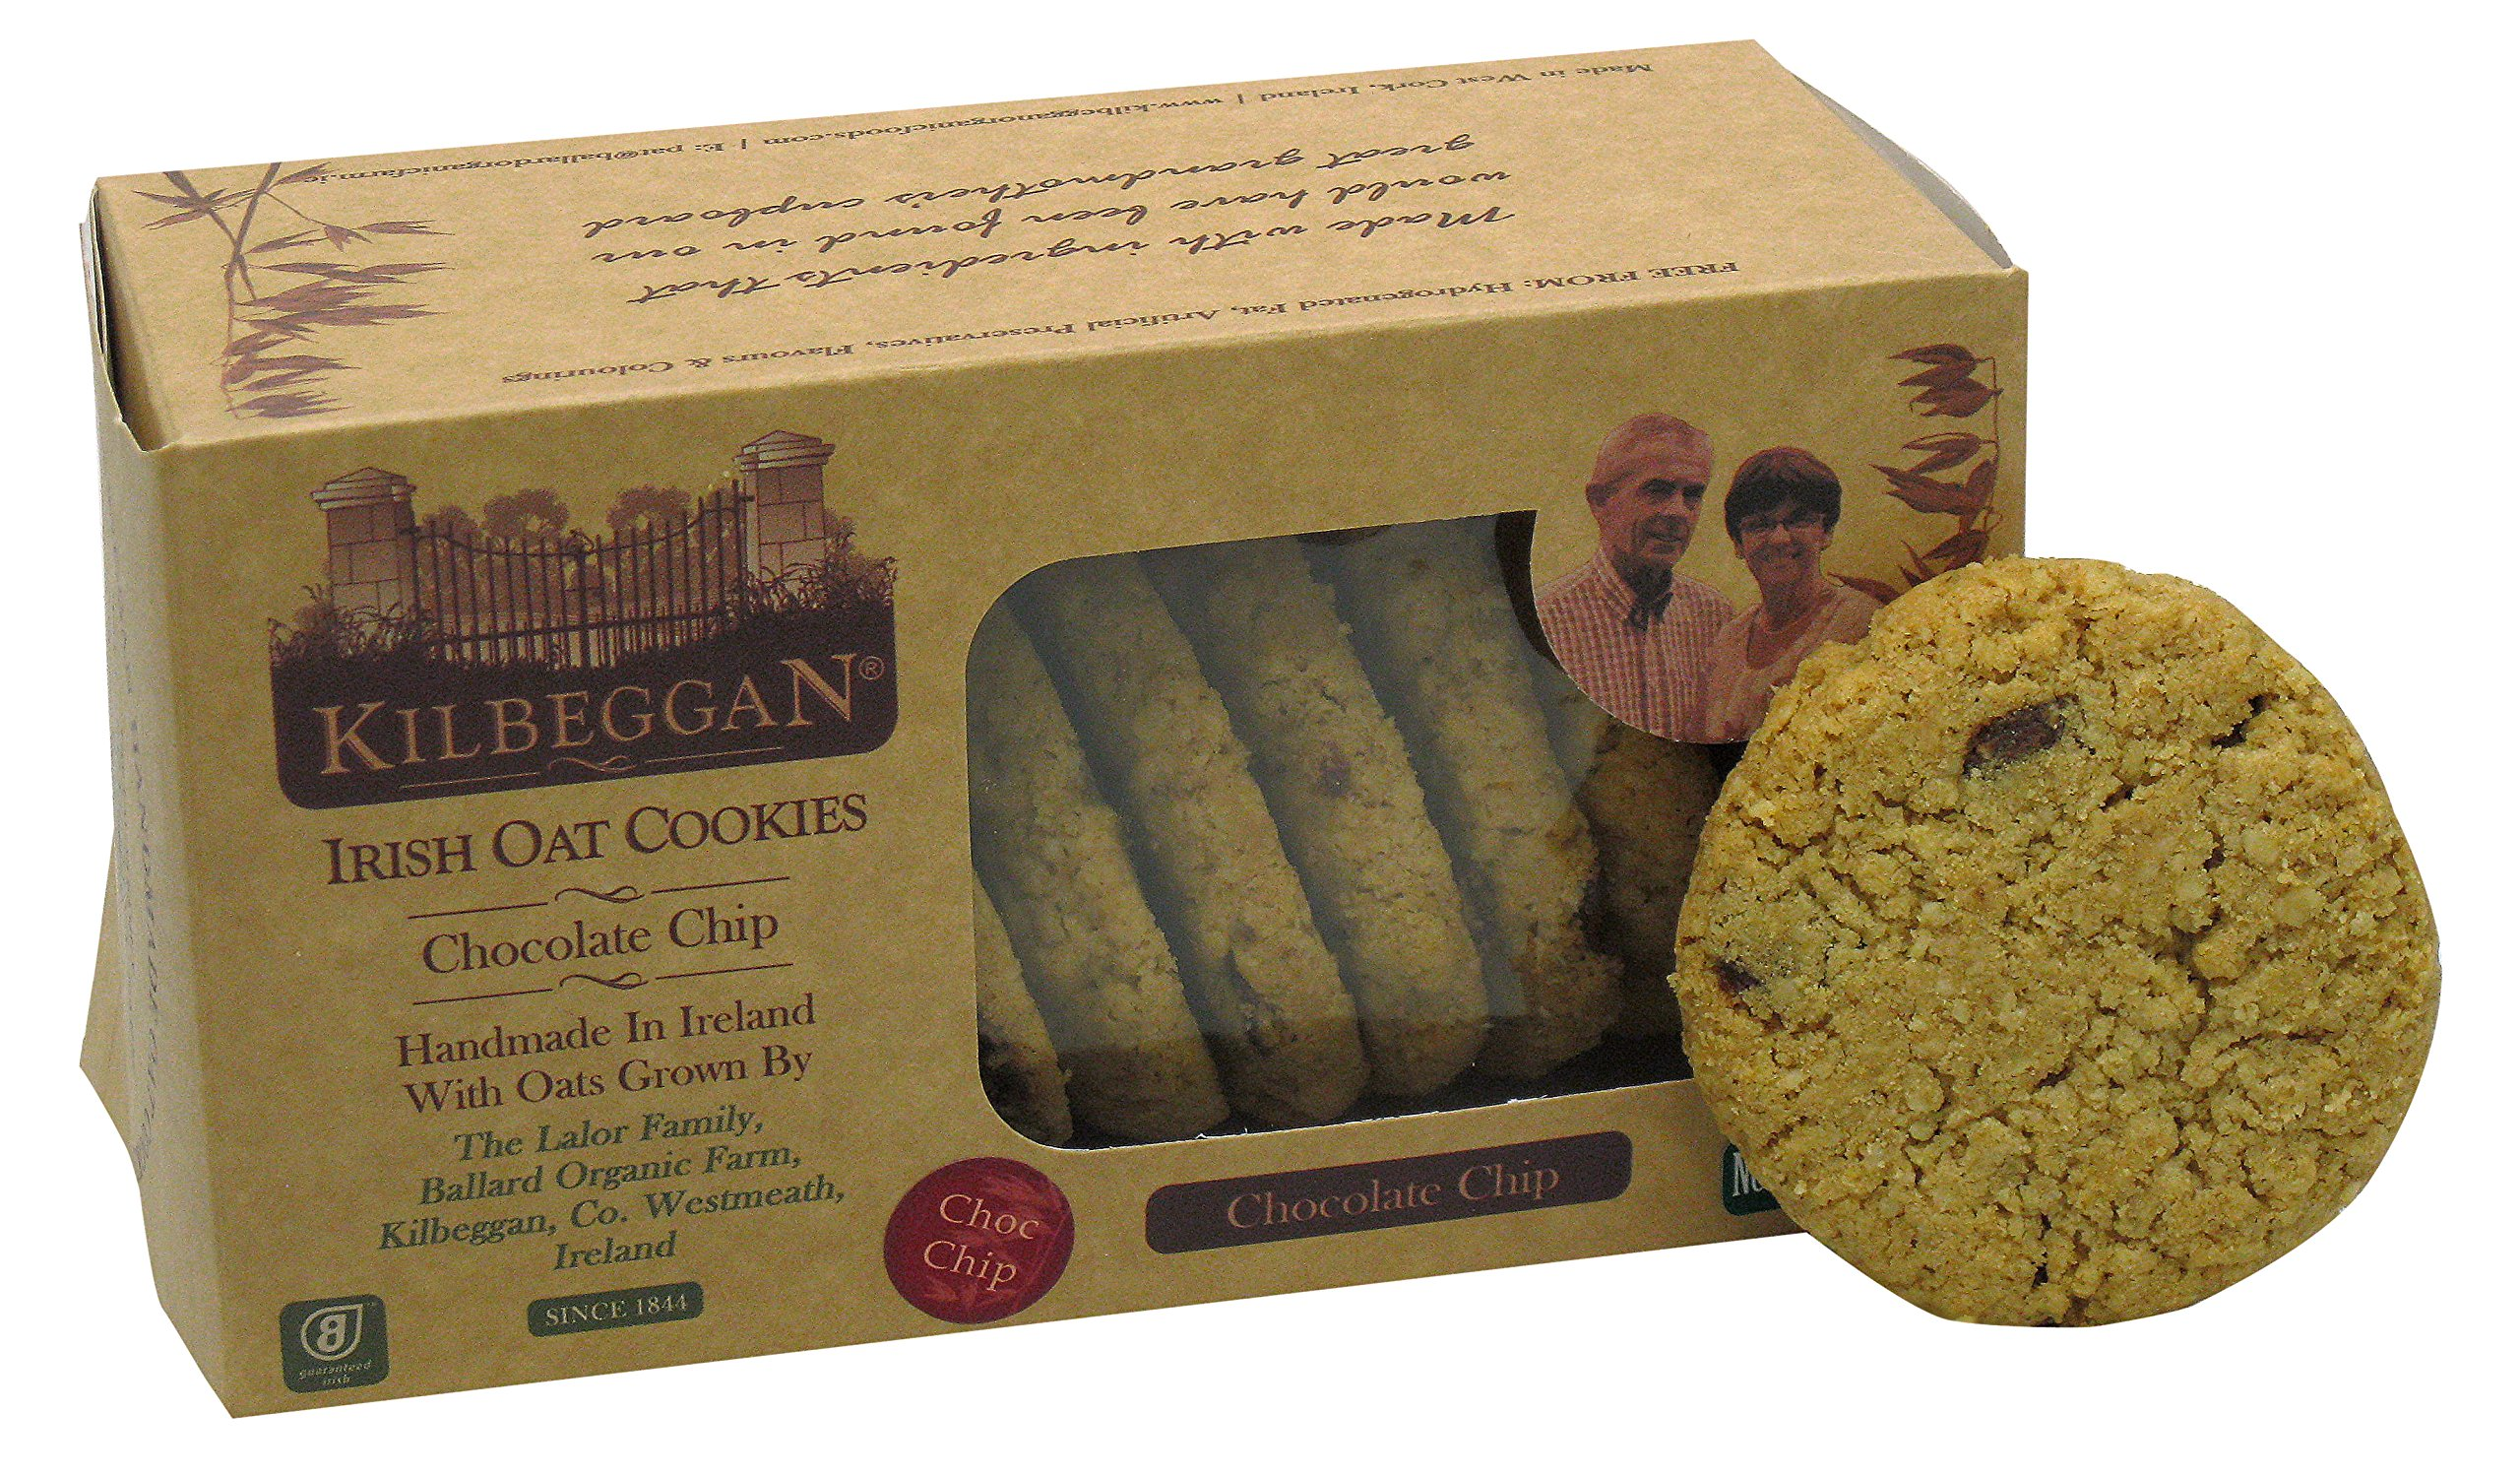 Kilbeggan Irish Oat Cookies, Chocolate Chip, 7 Ounce